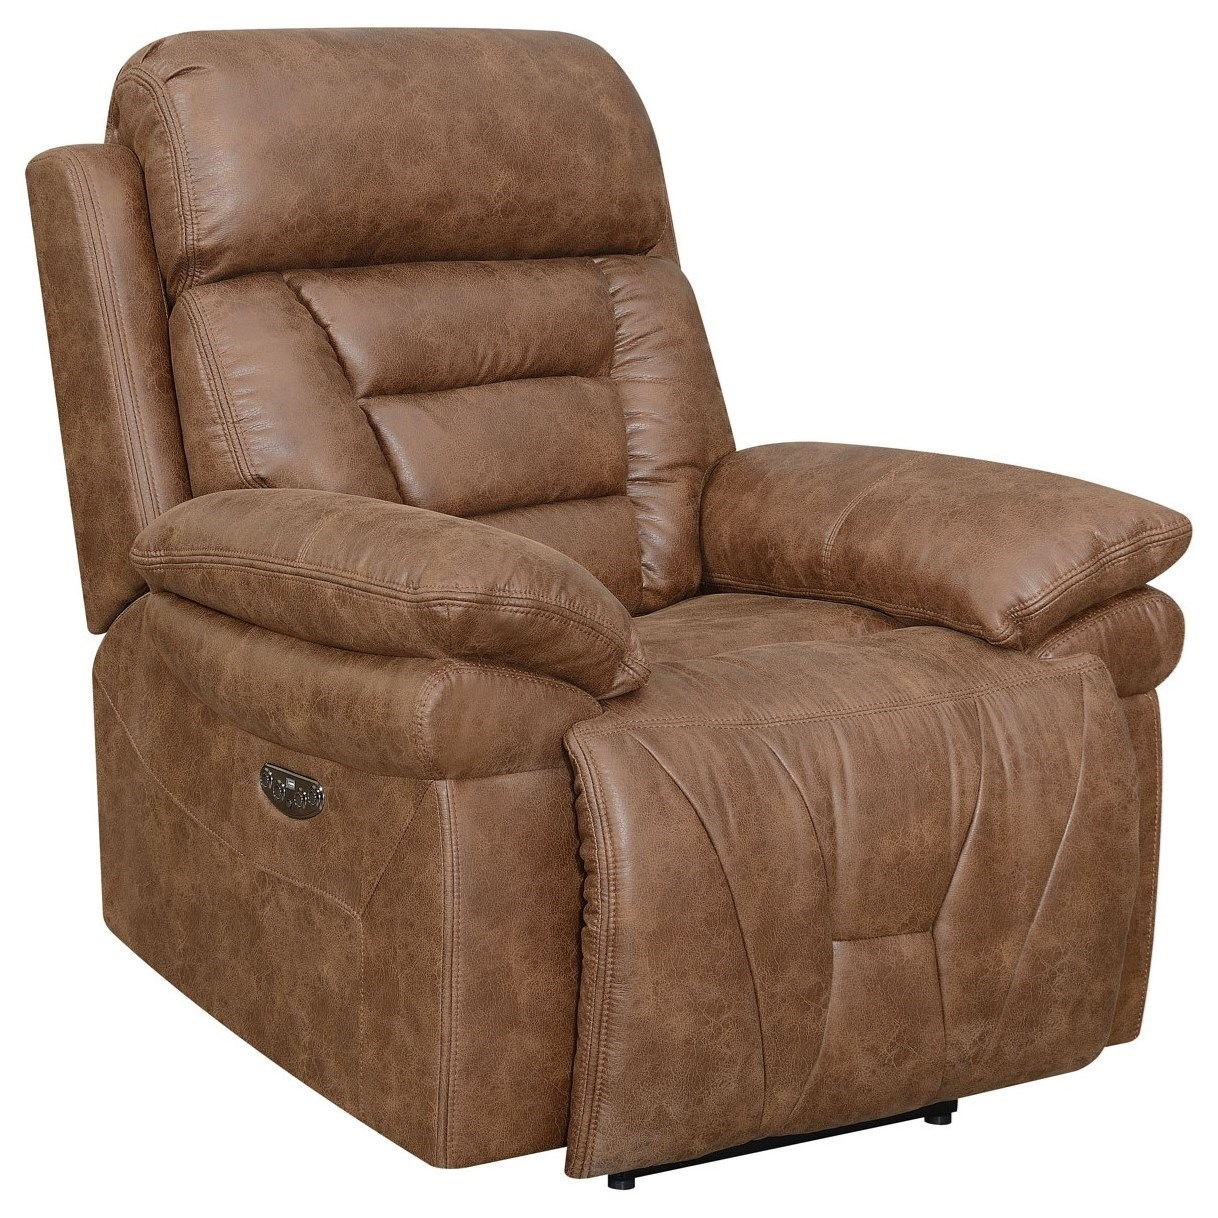 Brock Lay Flat Power Recliner by Steve Silver at Darvin Furniture